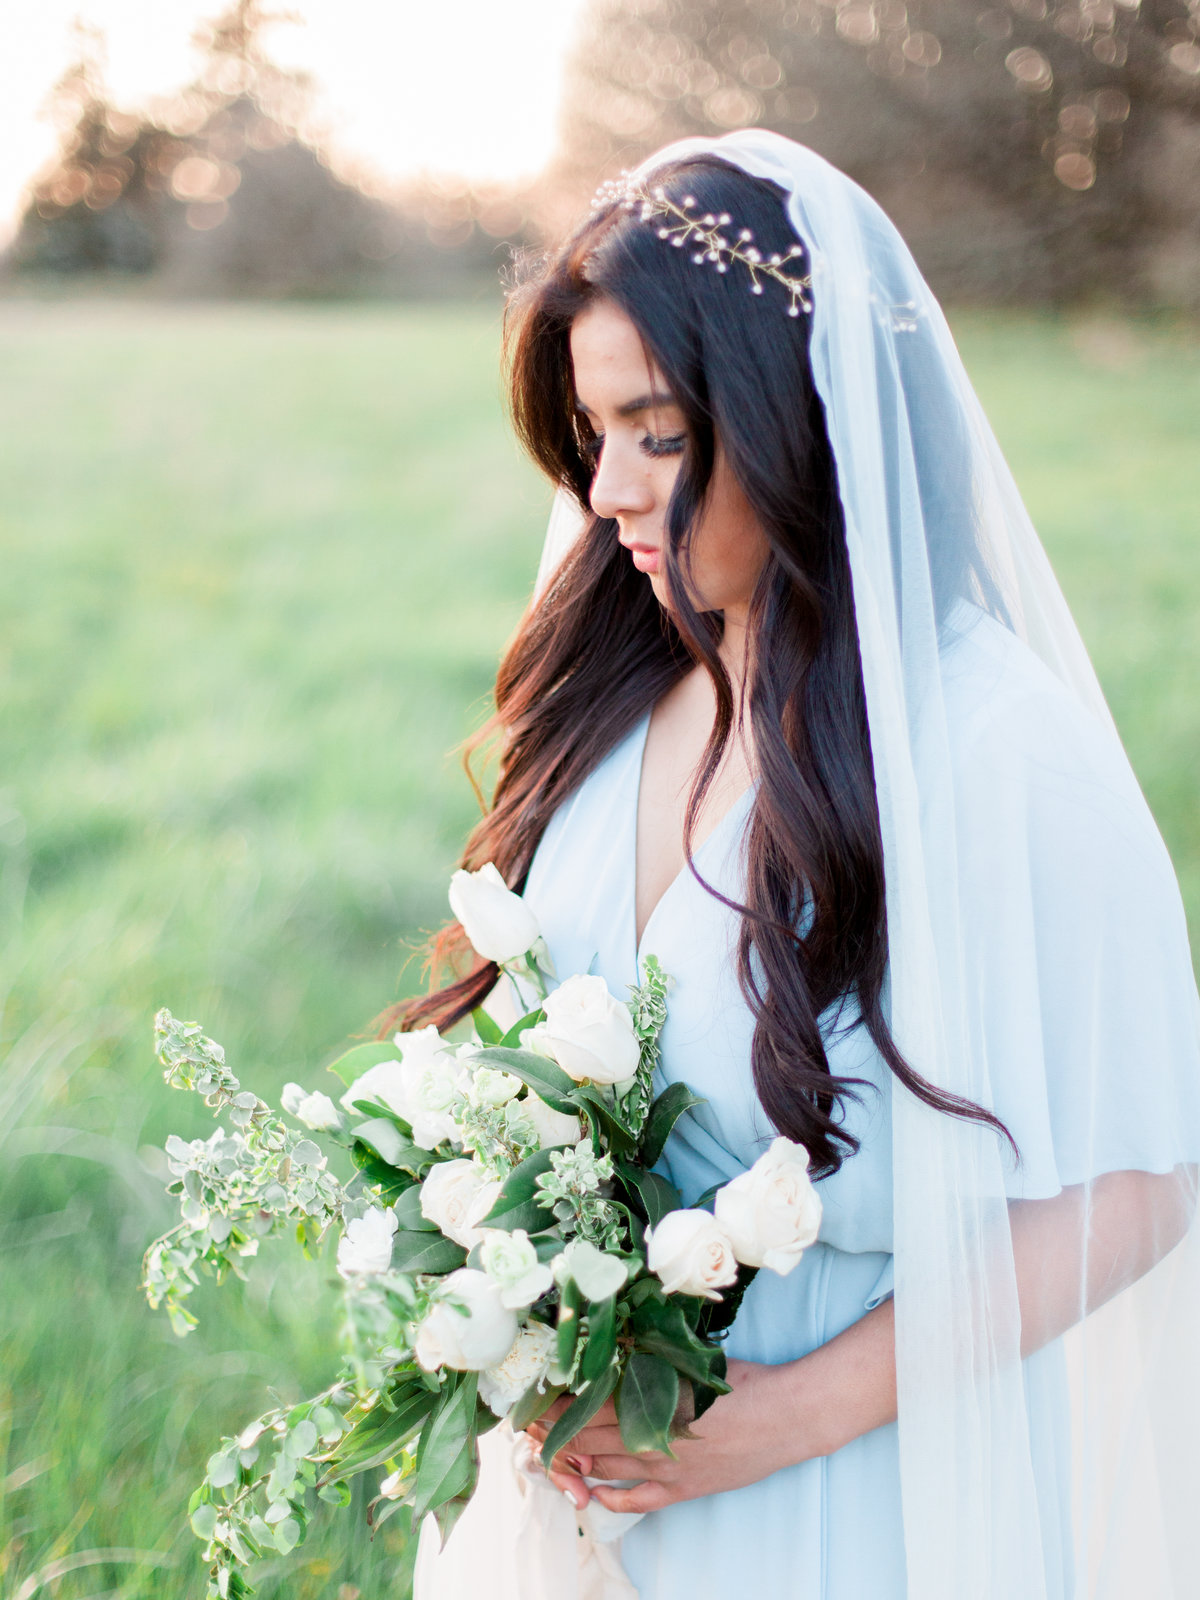 WHEN-SHE-KNEW-PHOTOGRAPHY-ADORN-MAGAZINE-ETHEREAL-BRIDAL-WEDDING-EDITORIAL-OREGON-17